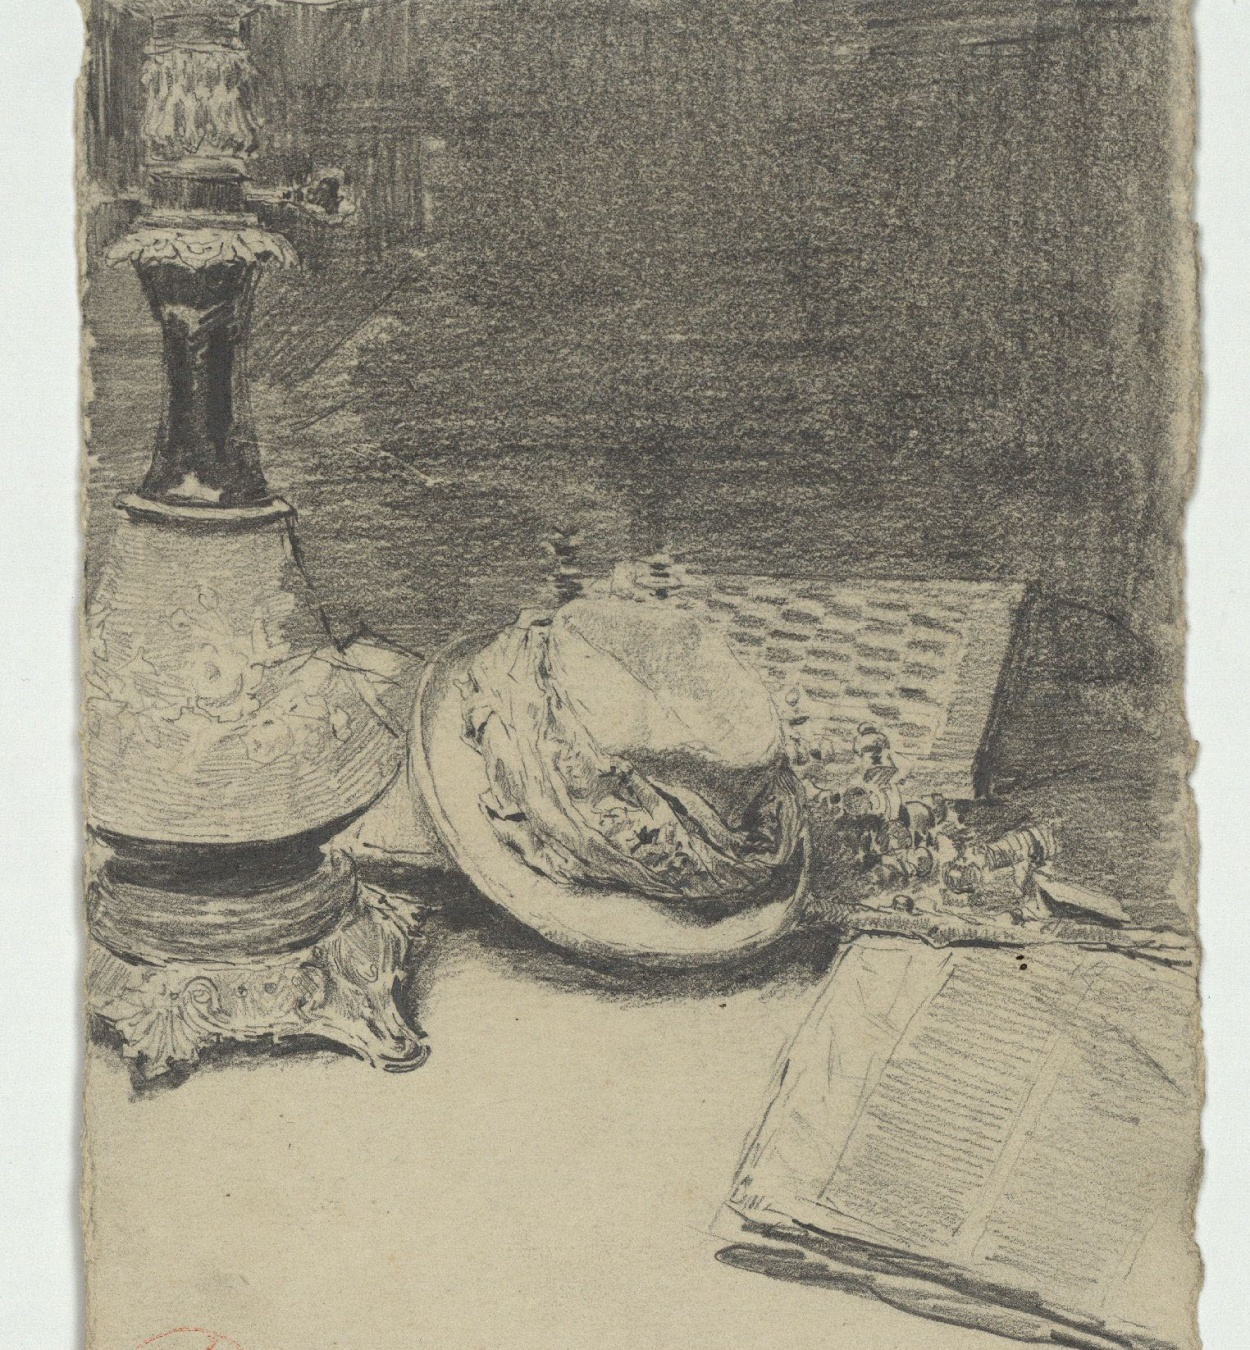 Marià Fortuny - Still life with hat - Circa 1863-1866